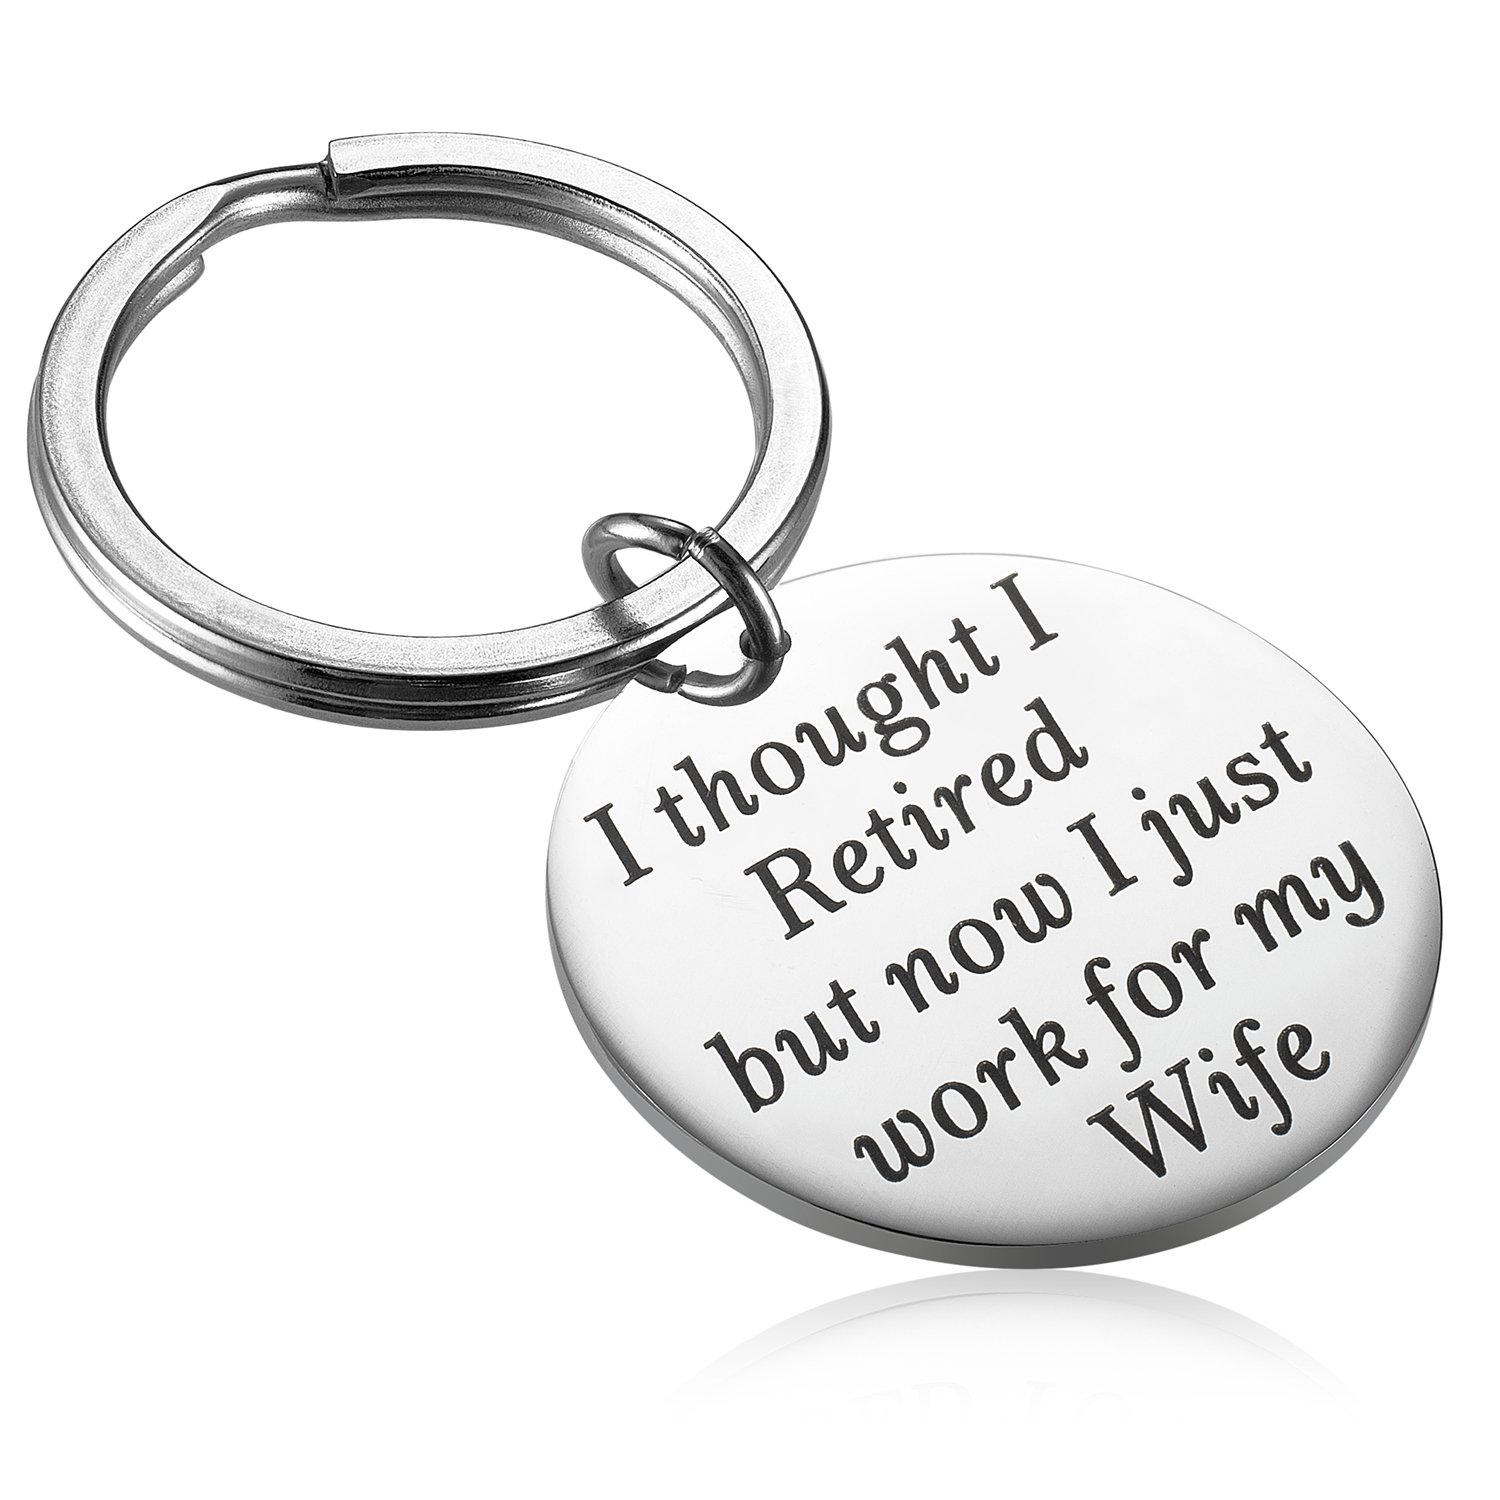 Alxeani Funny Humor Retirement Gag Gifts for Coworkers, Men and Dad, Retirement Keychain for Boss Husband Retired Now I Just Work for My Wife